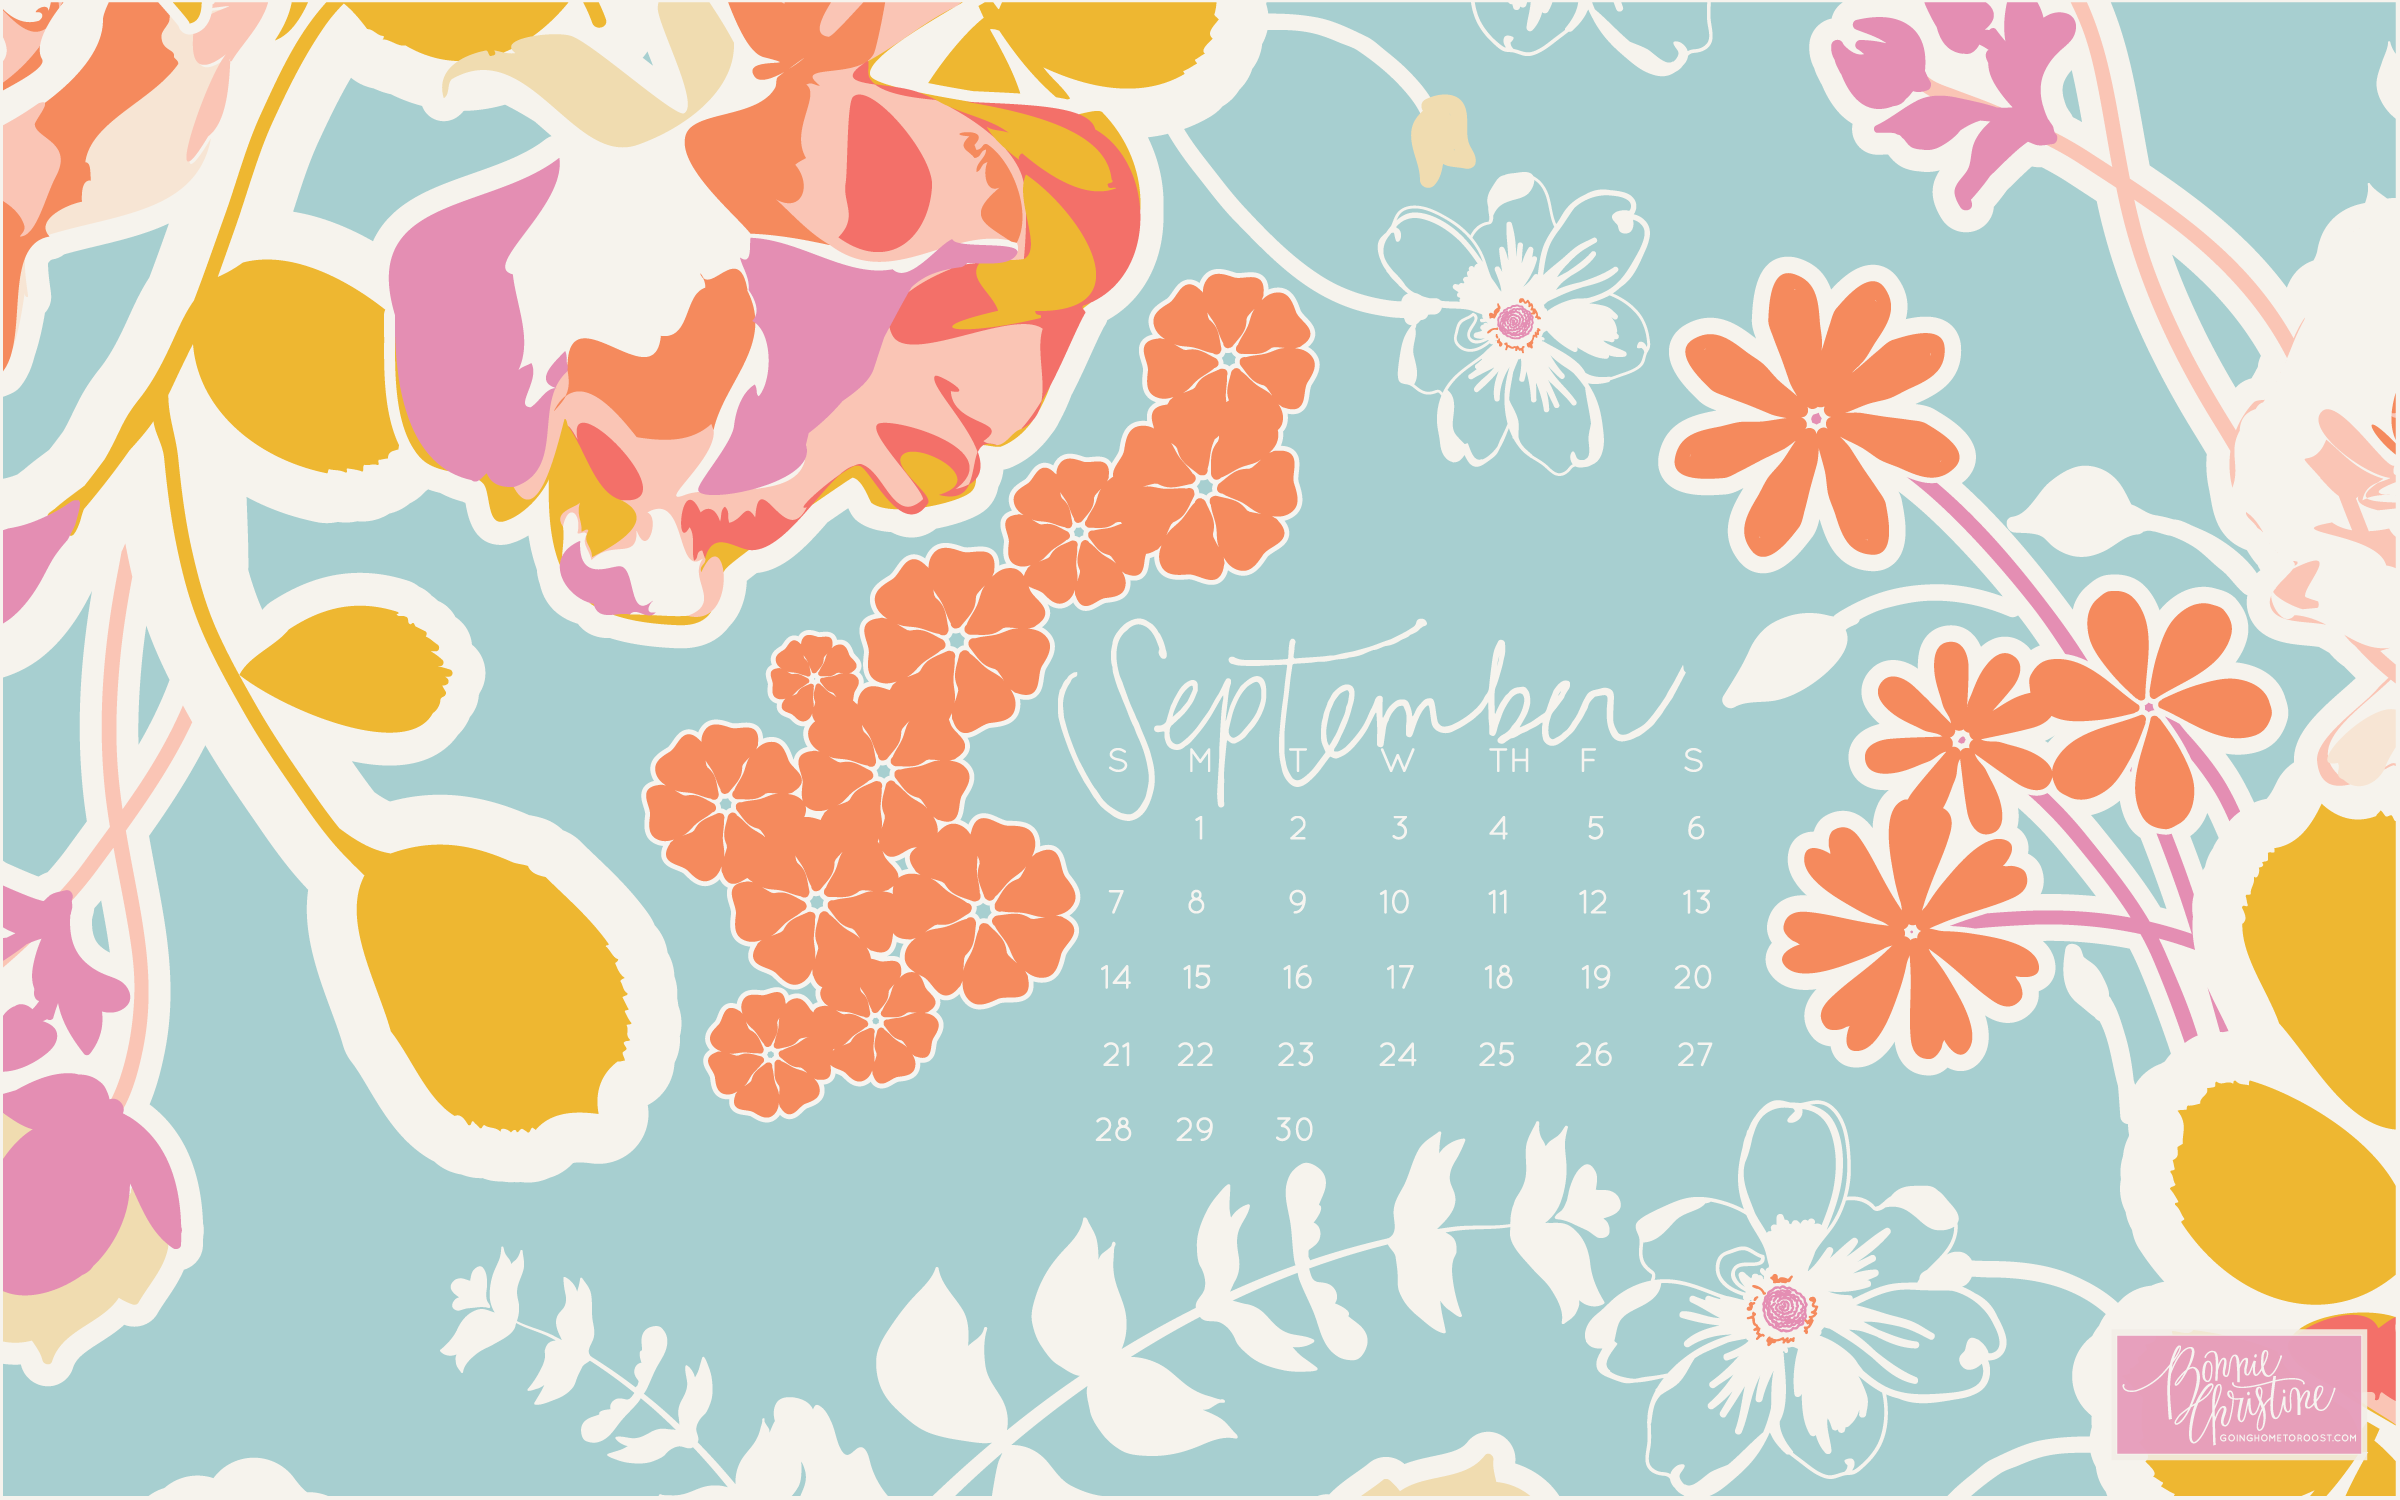 september 2015 wallpaper calendar - photo #10